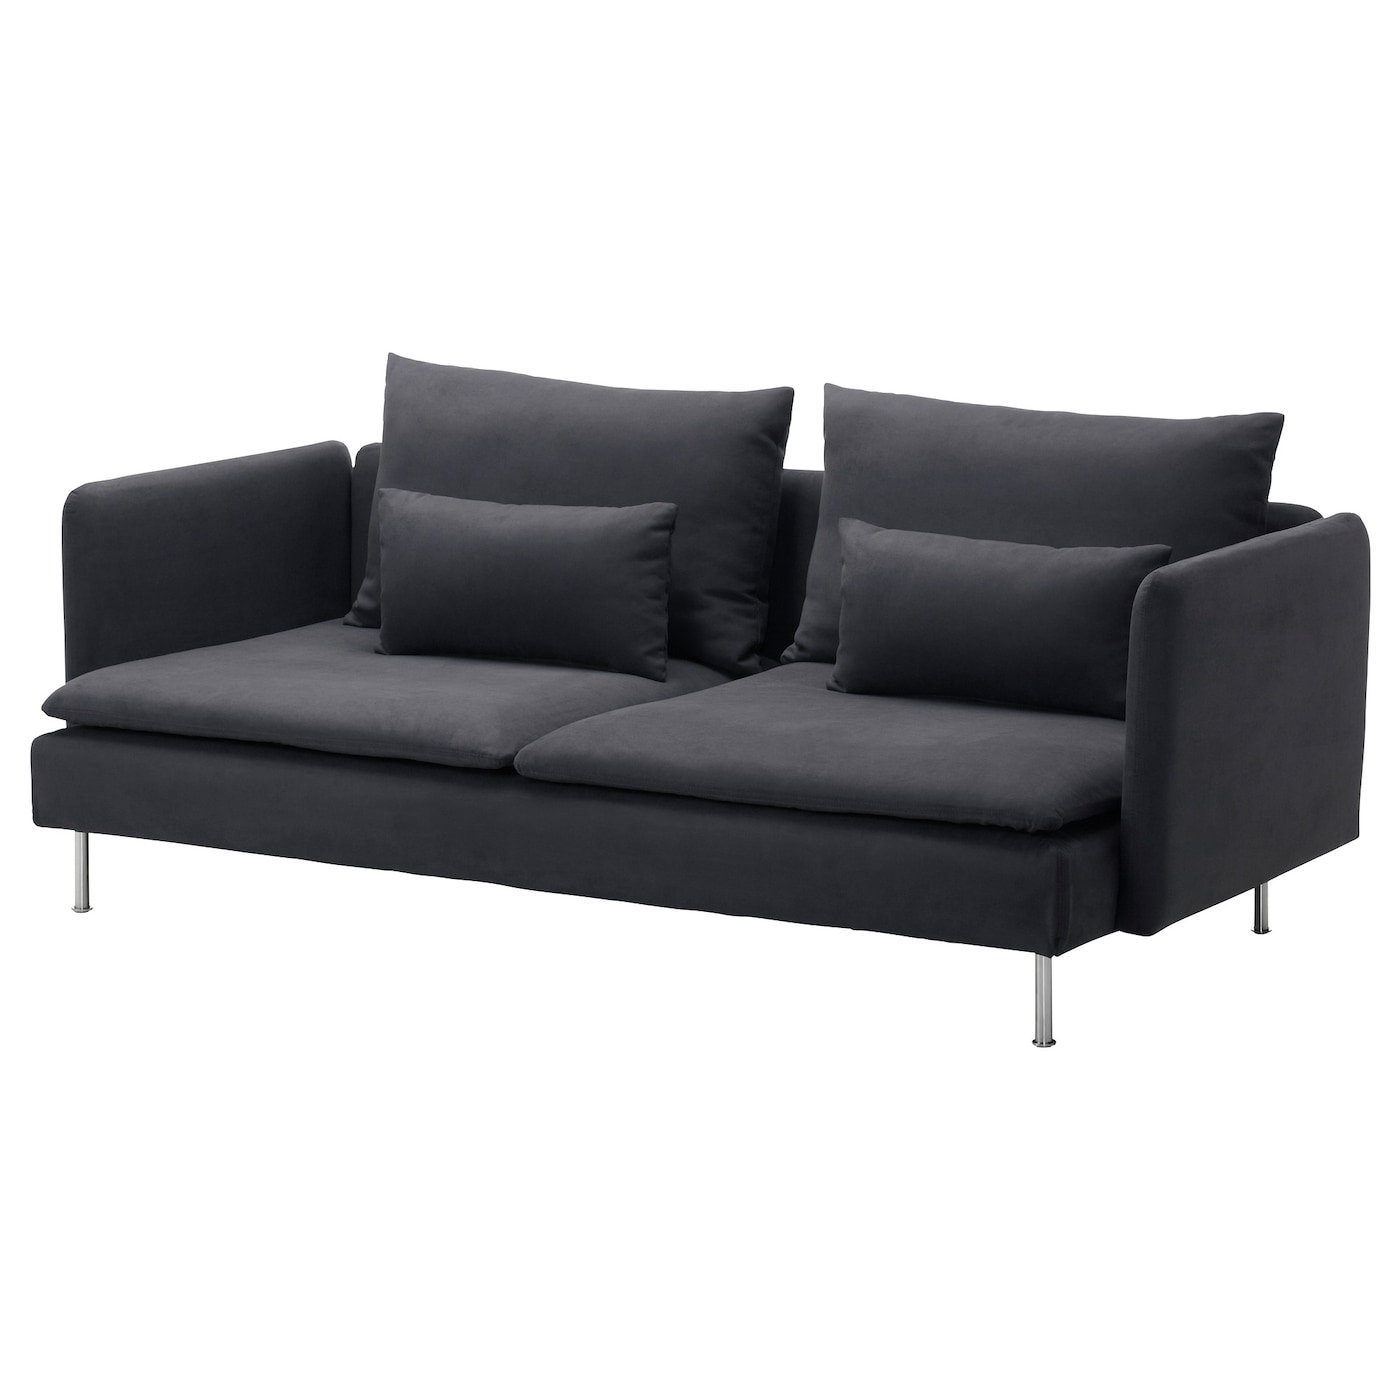 S derhamn three seat sofa samsta dark grey ikea for Sofa bed 3 2